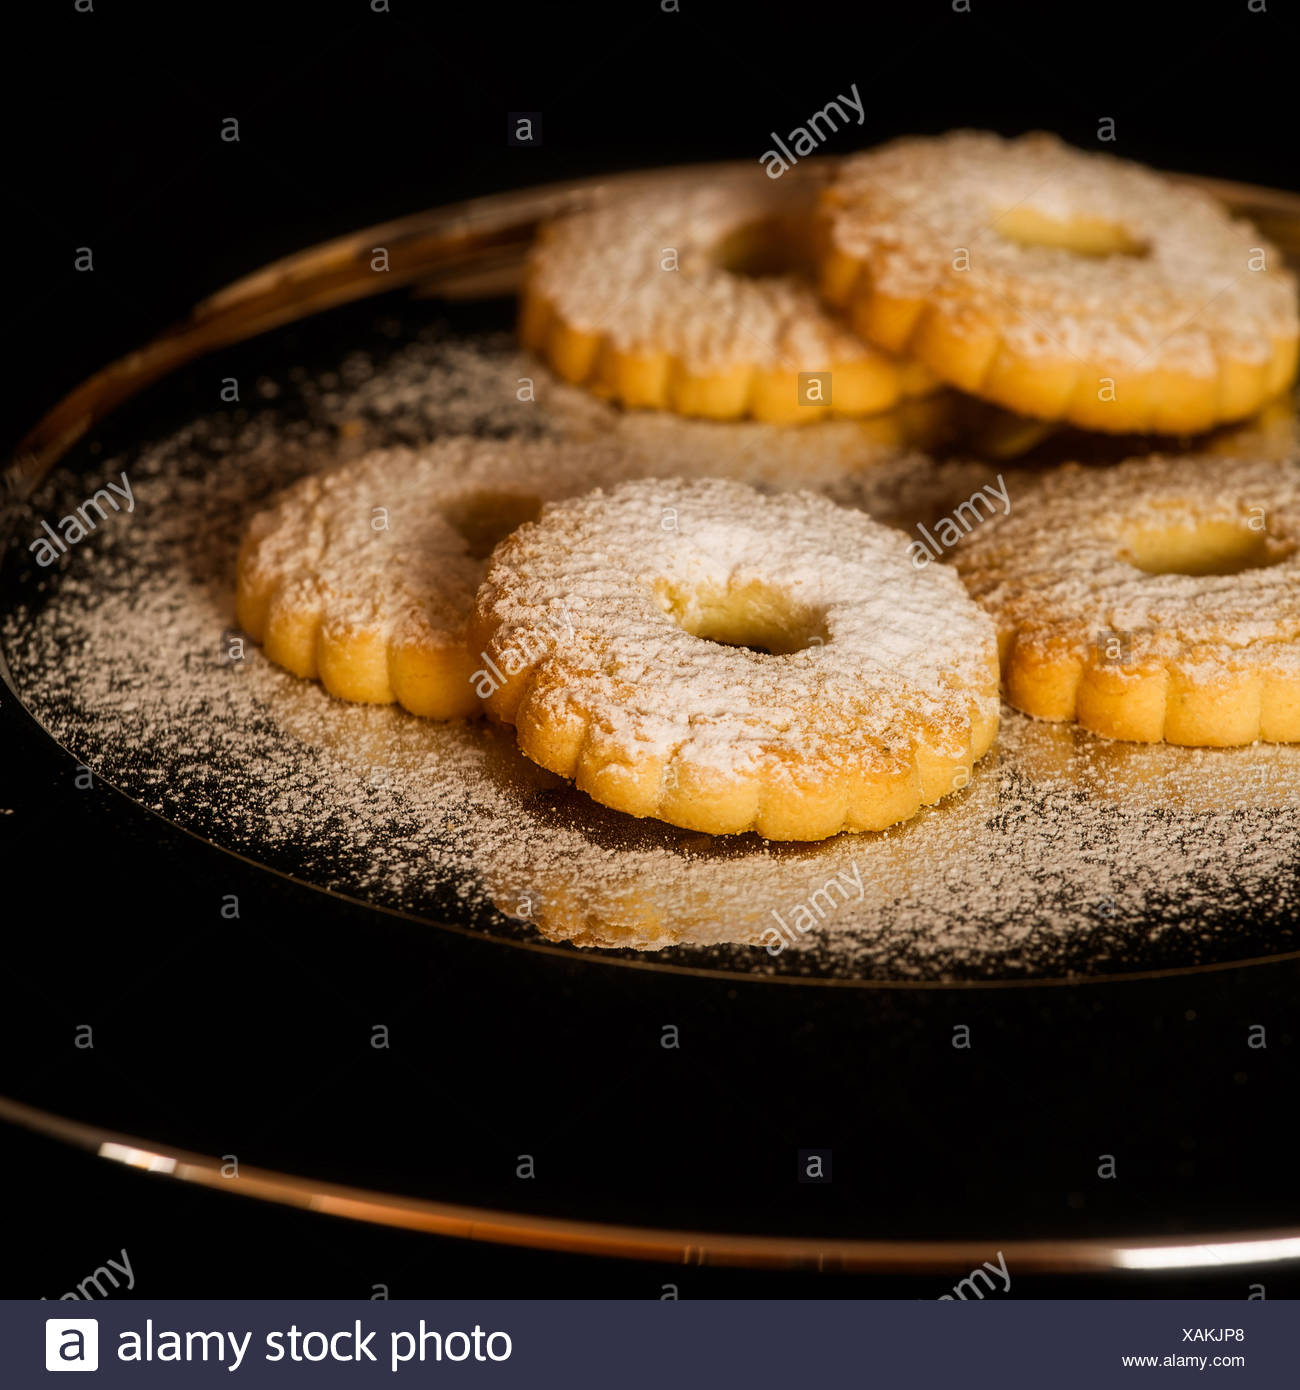 Biscuits canestrelli with icing sugar - Stock Image